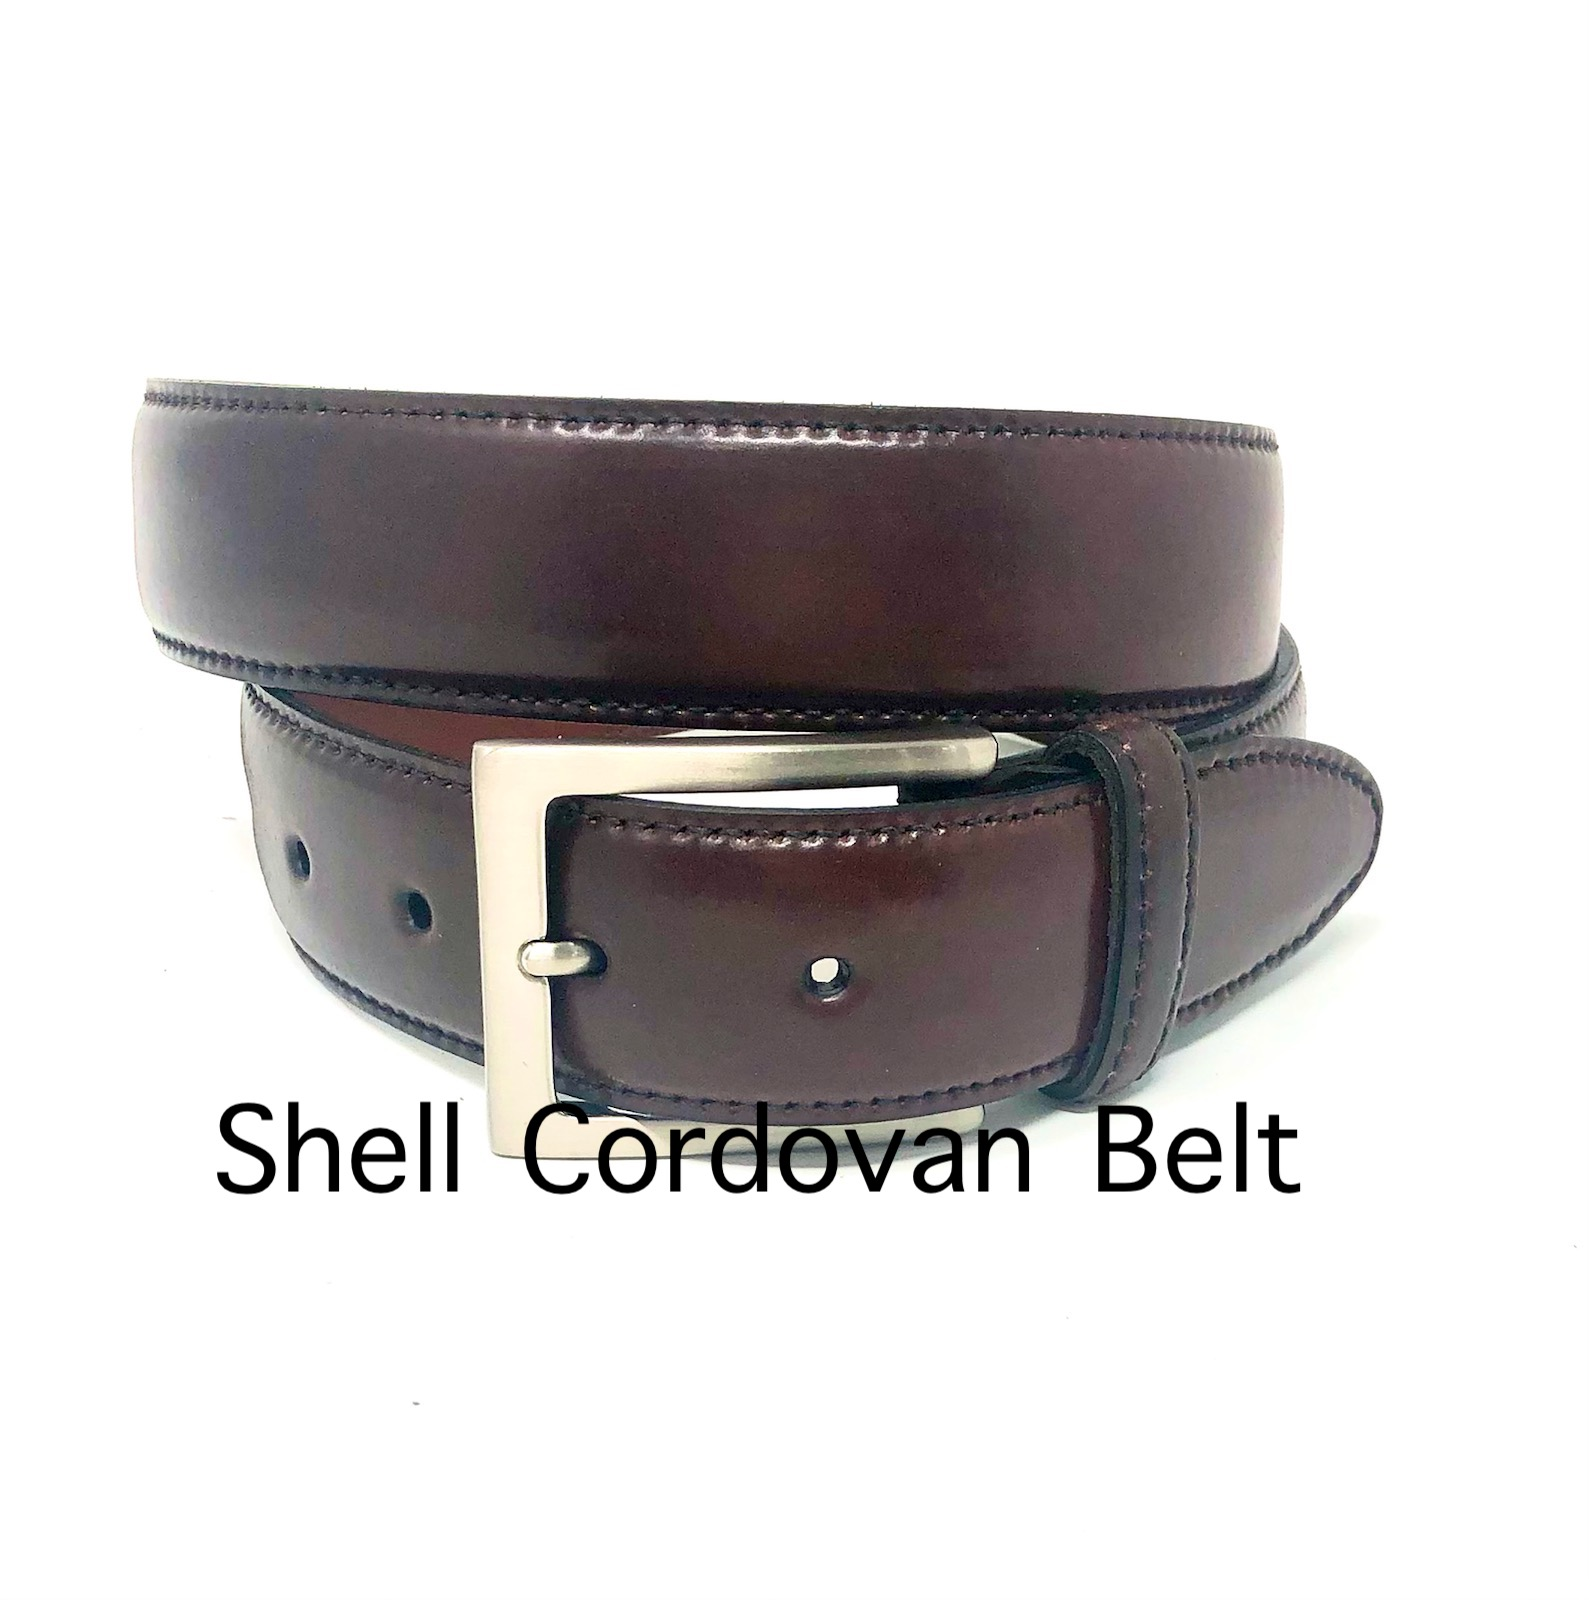 Shell Cordavan Belt 2 copy